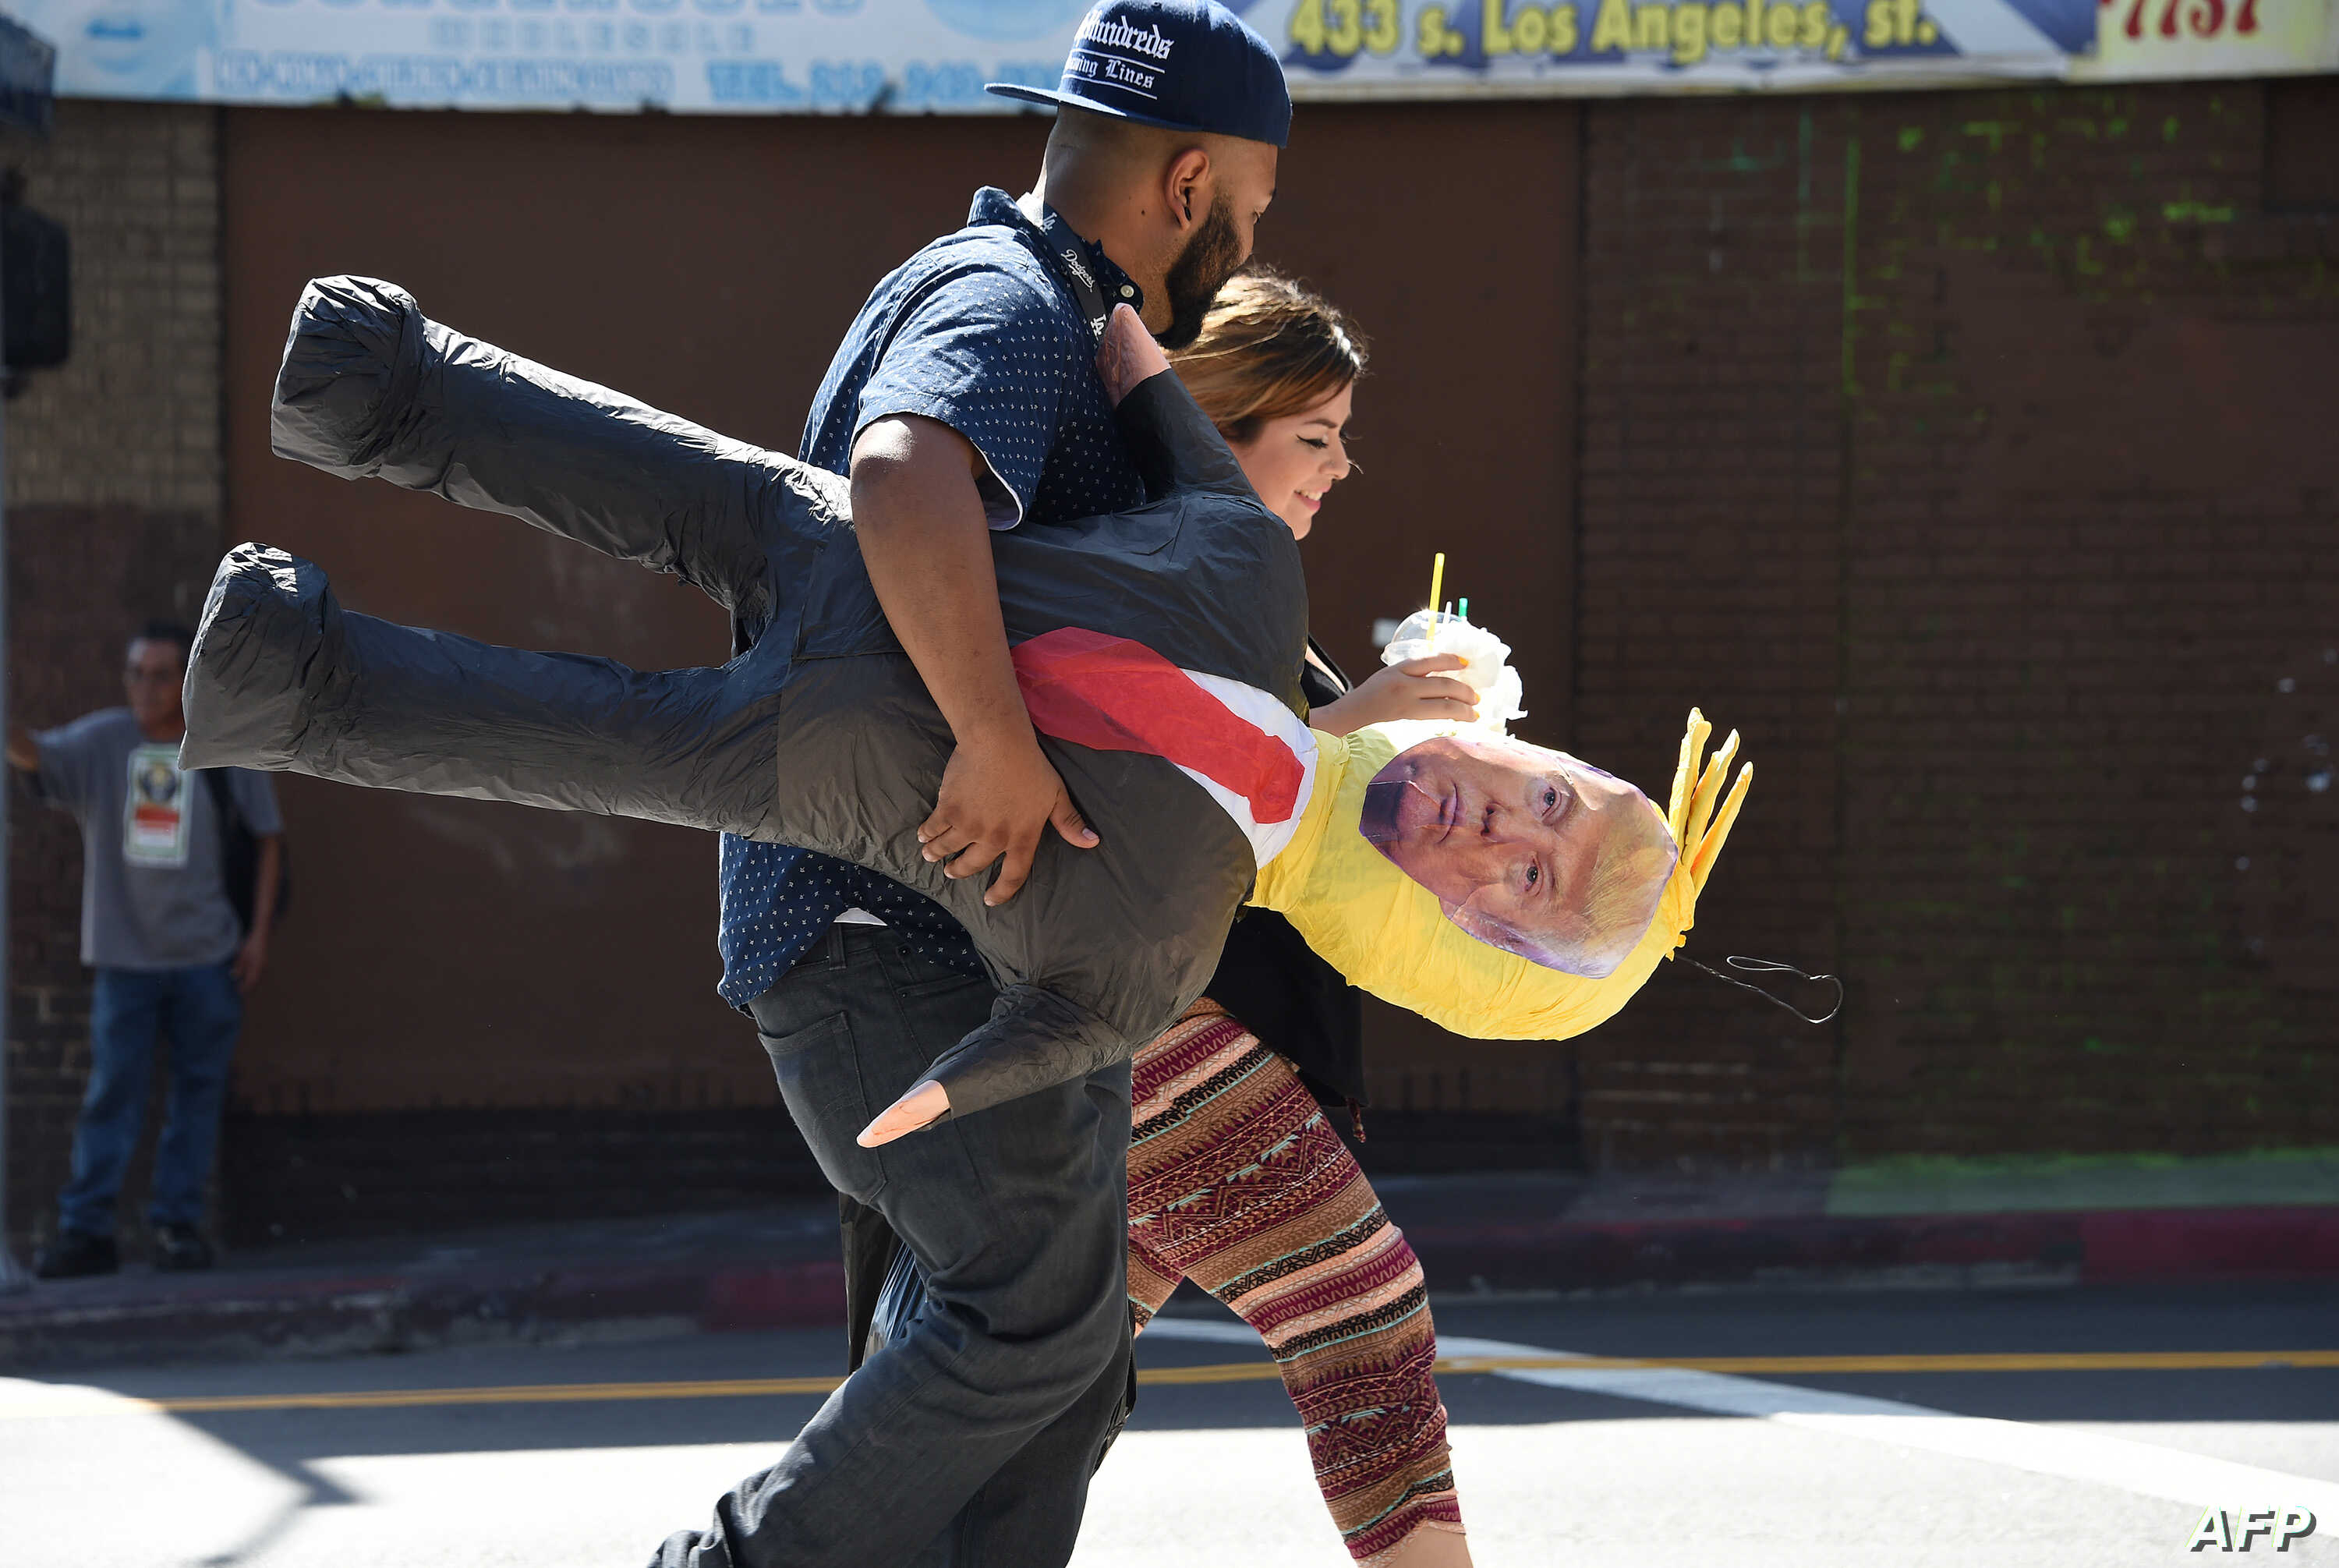 A Latino couple walk with a pinata of Republican presidential candidate Donald Trump, September 23, 2015 in downtown Los Angeles.